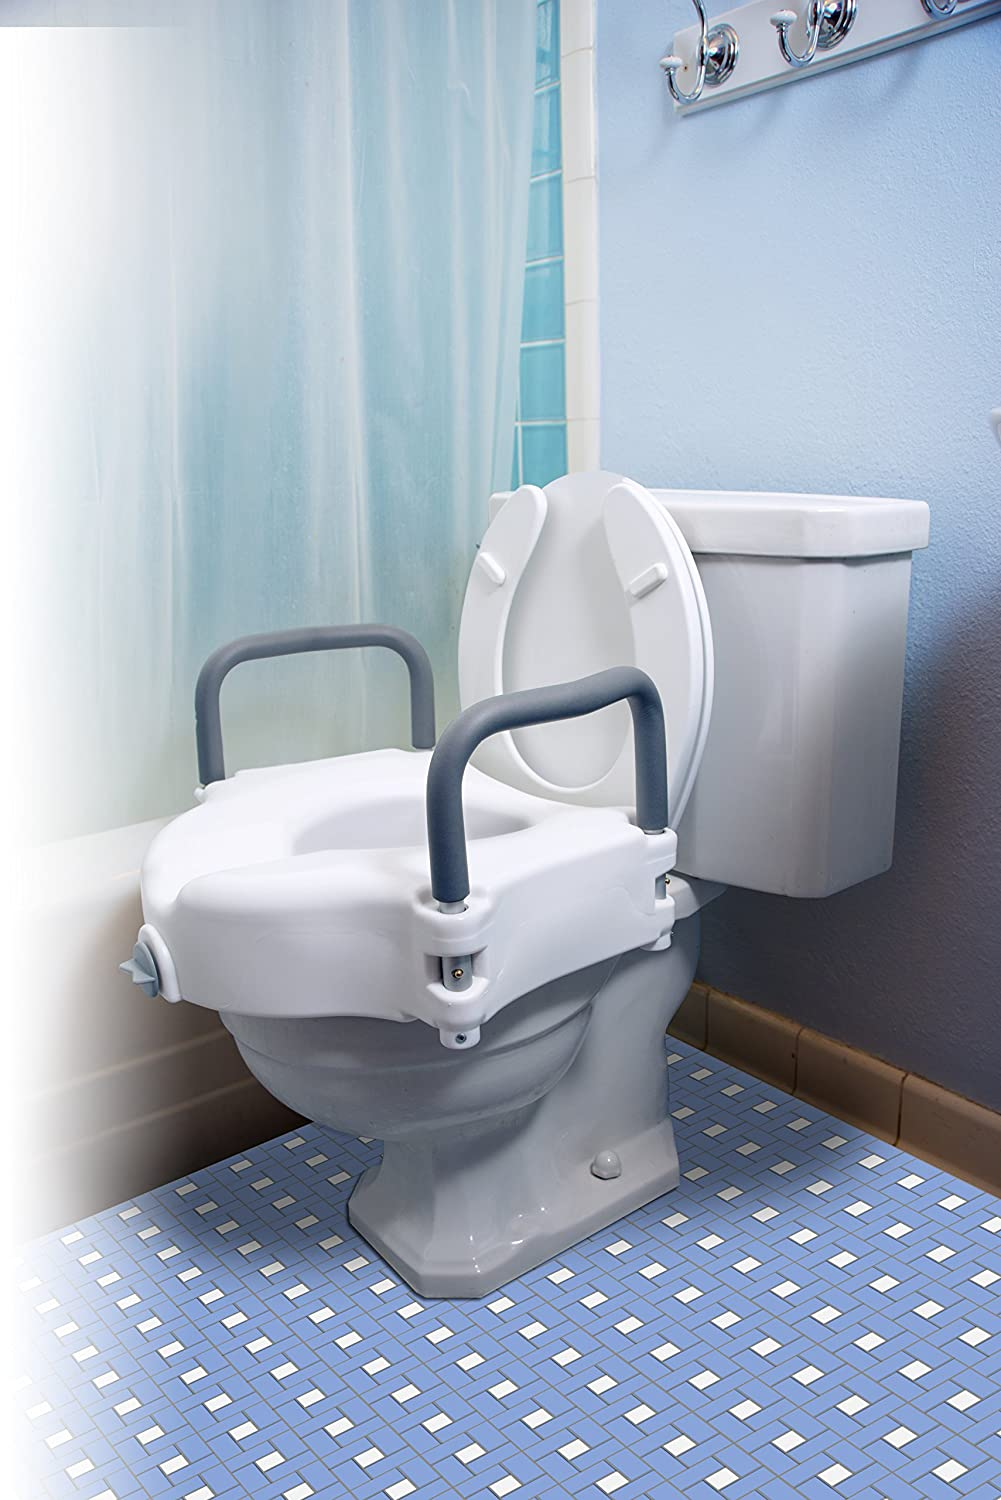 How to Buy an Elevated Toilet Seat | - LIFE SUPPORT